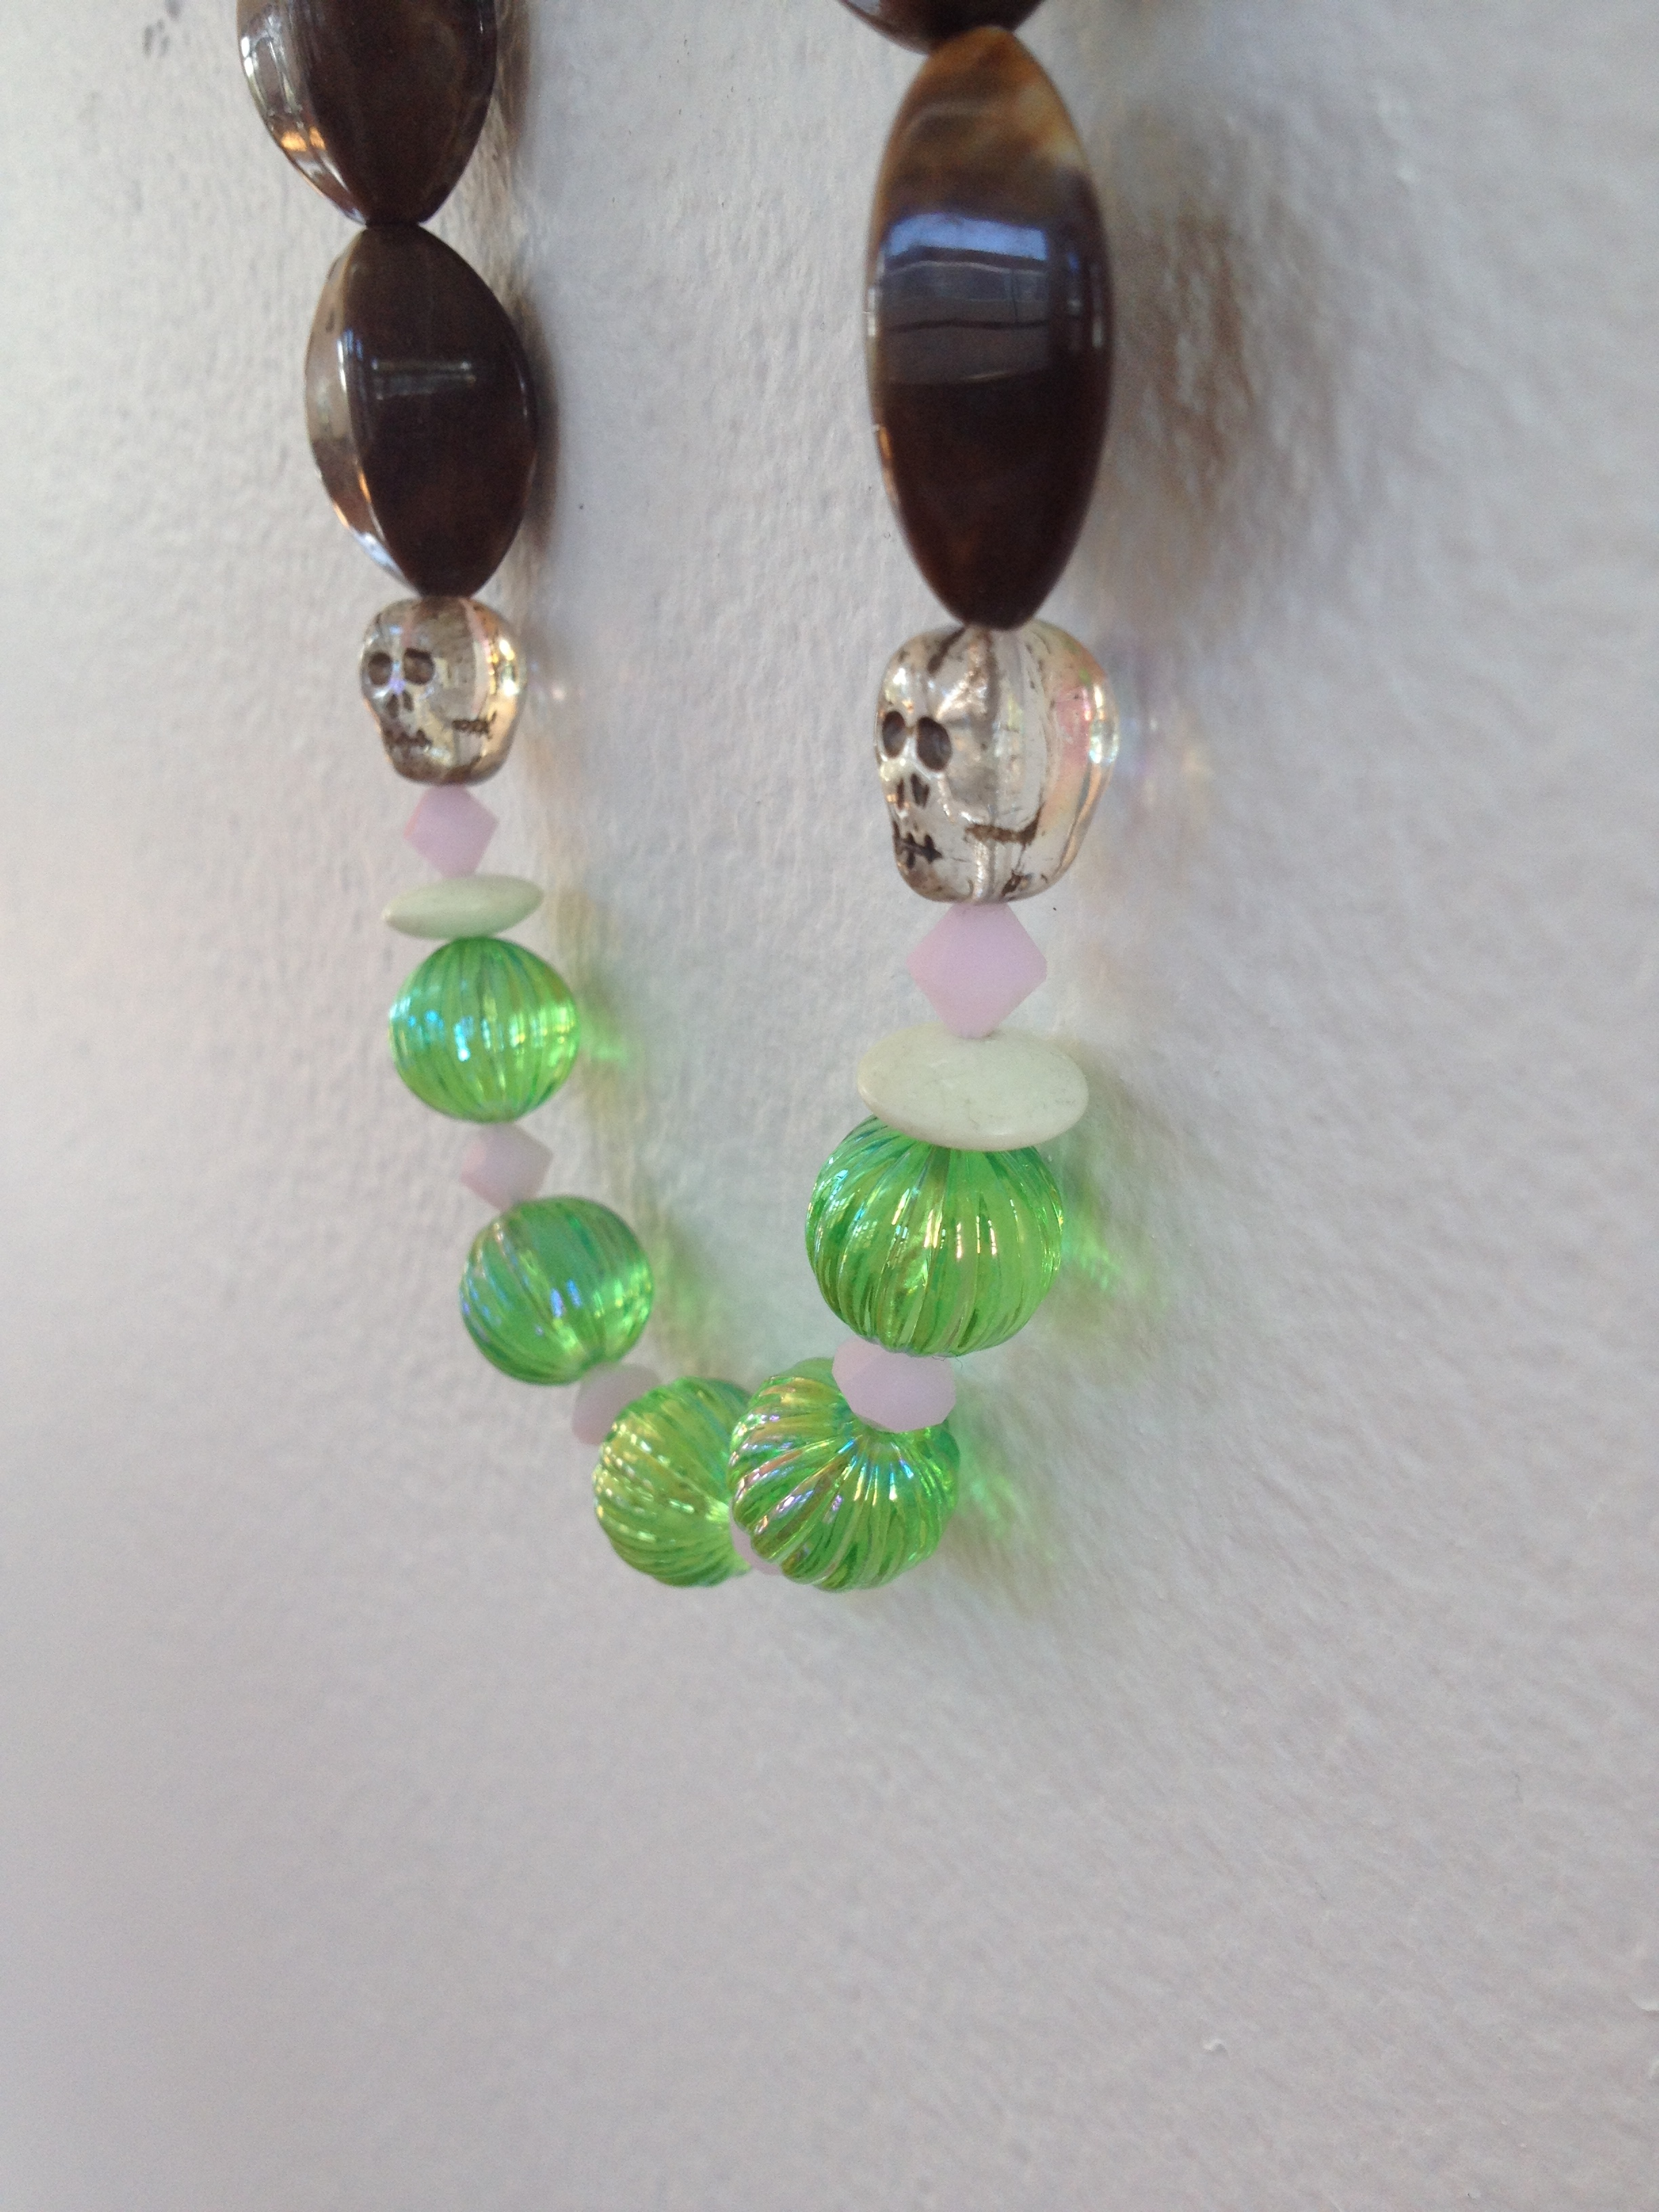 Bonbon_Necklace_22_detail_3.jpg